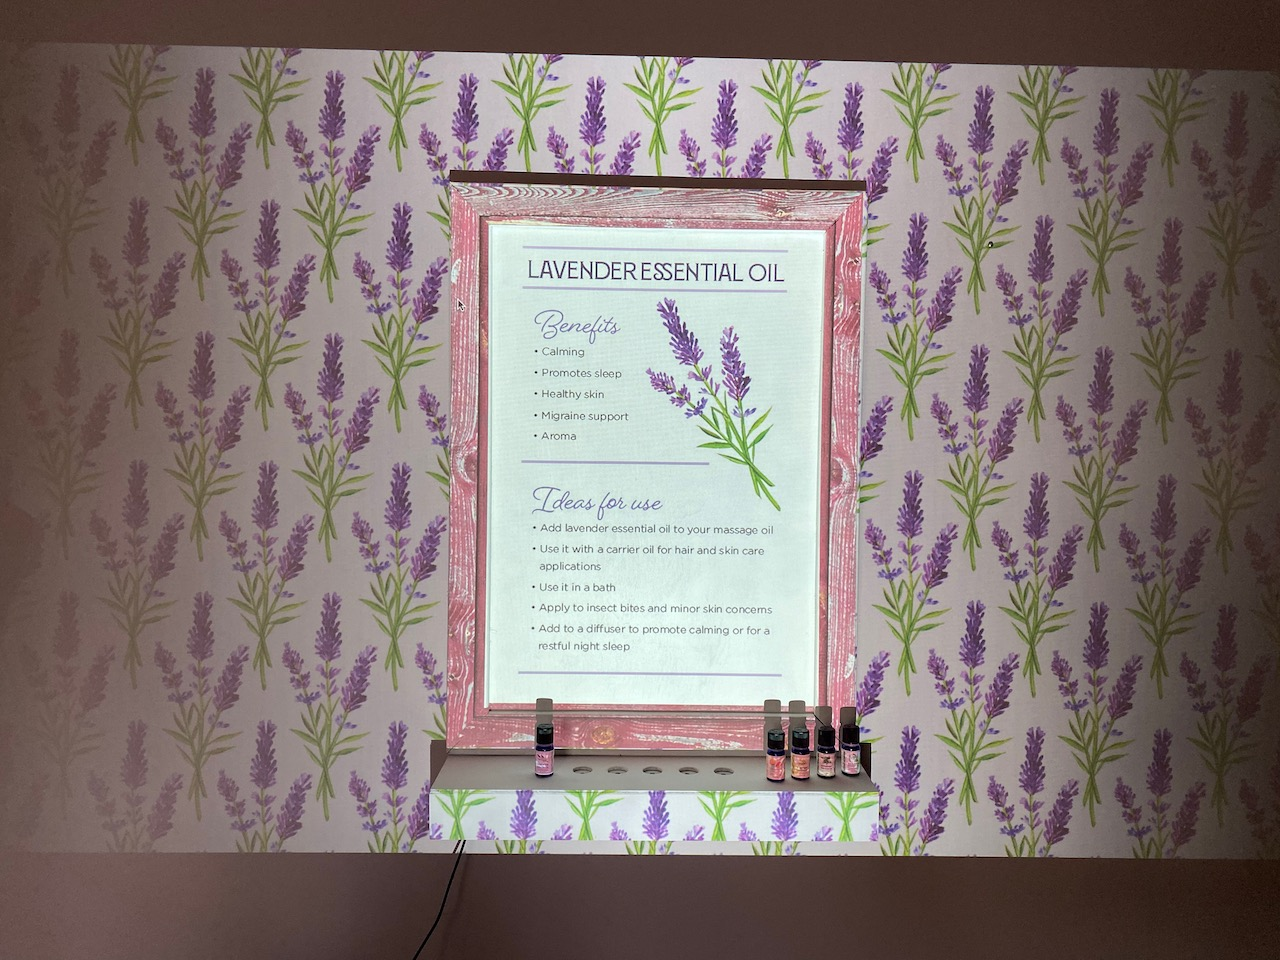 Lavender Essential Oil display